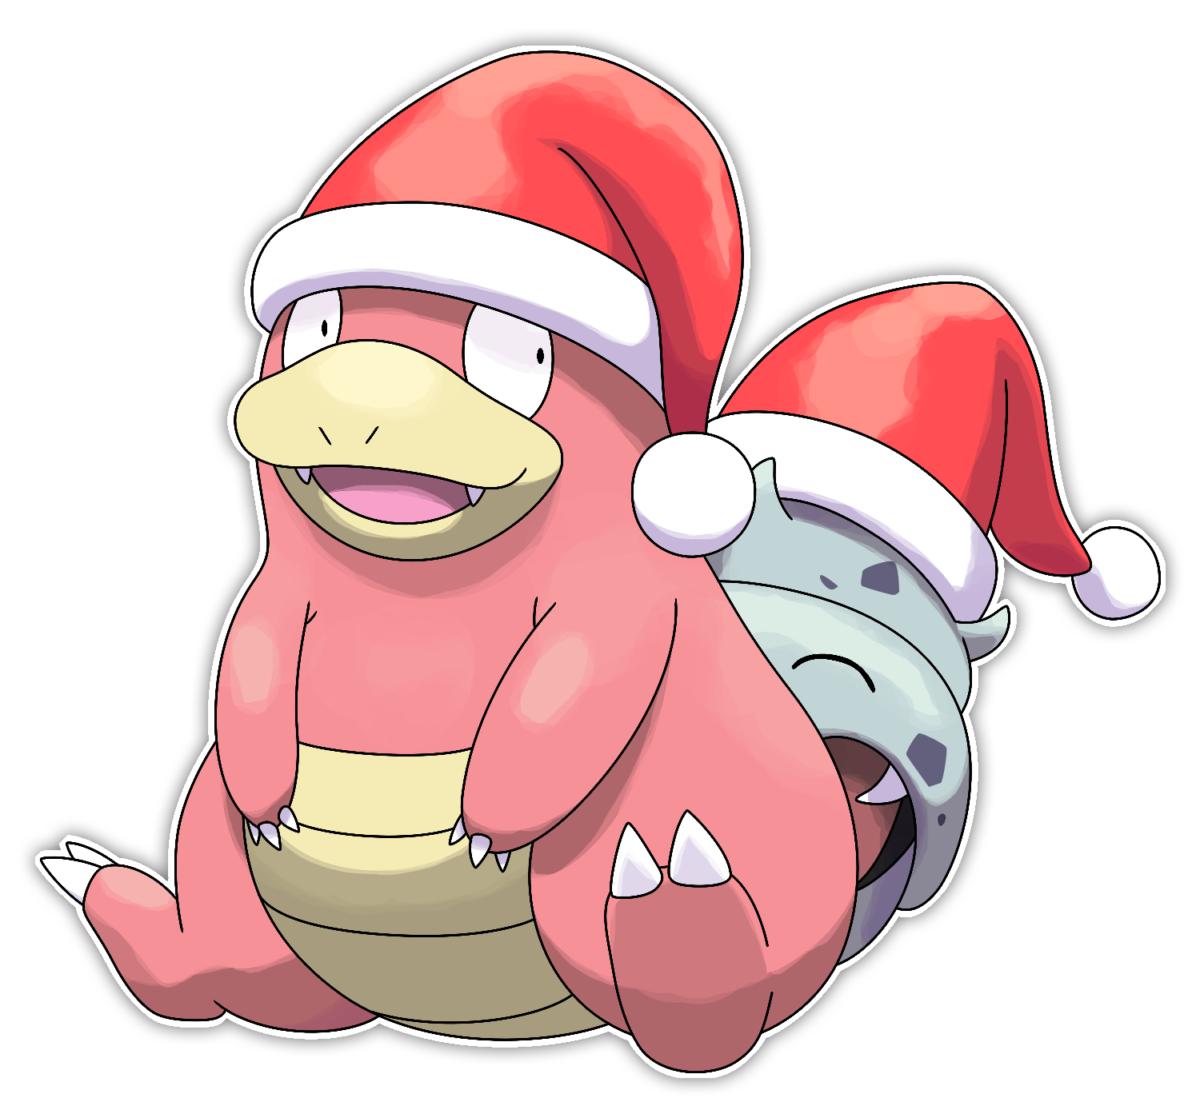 Slowbro – Commission by Smiley-Fakemon on DeviantArt